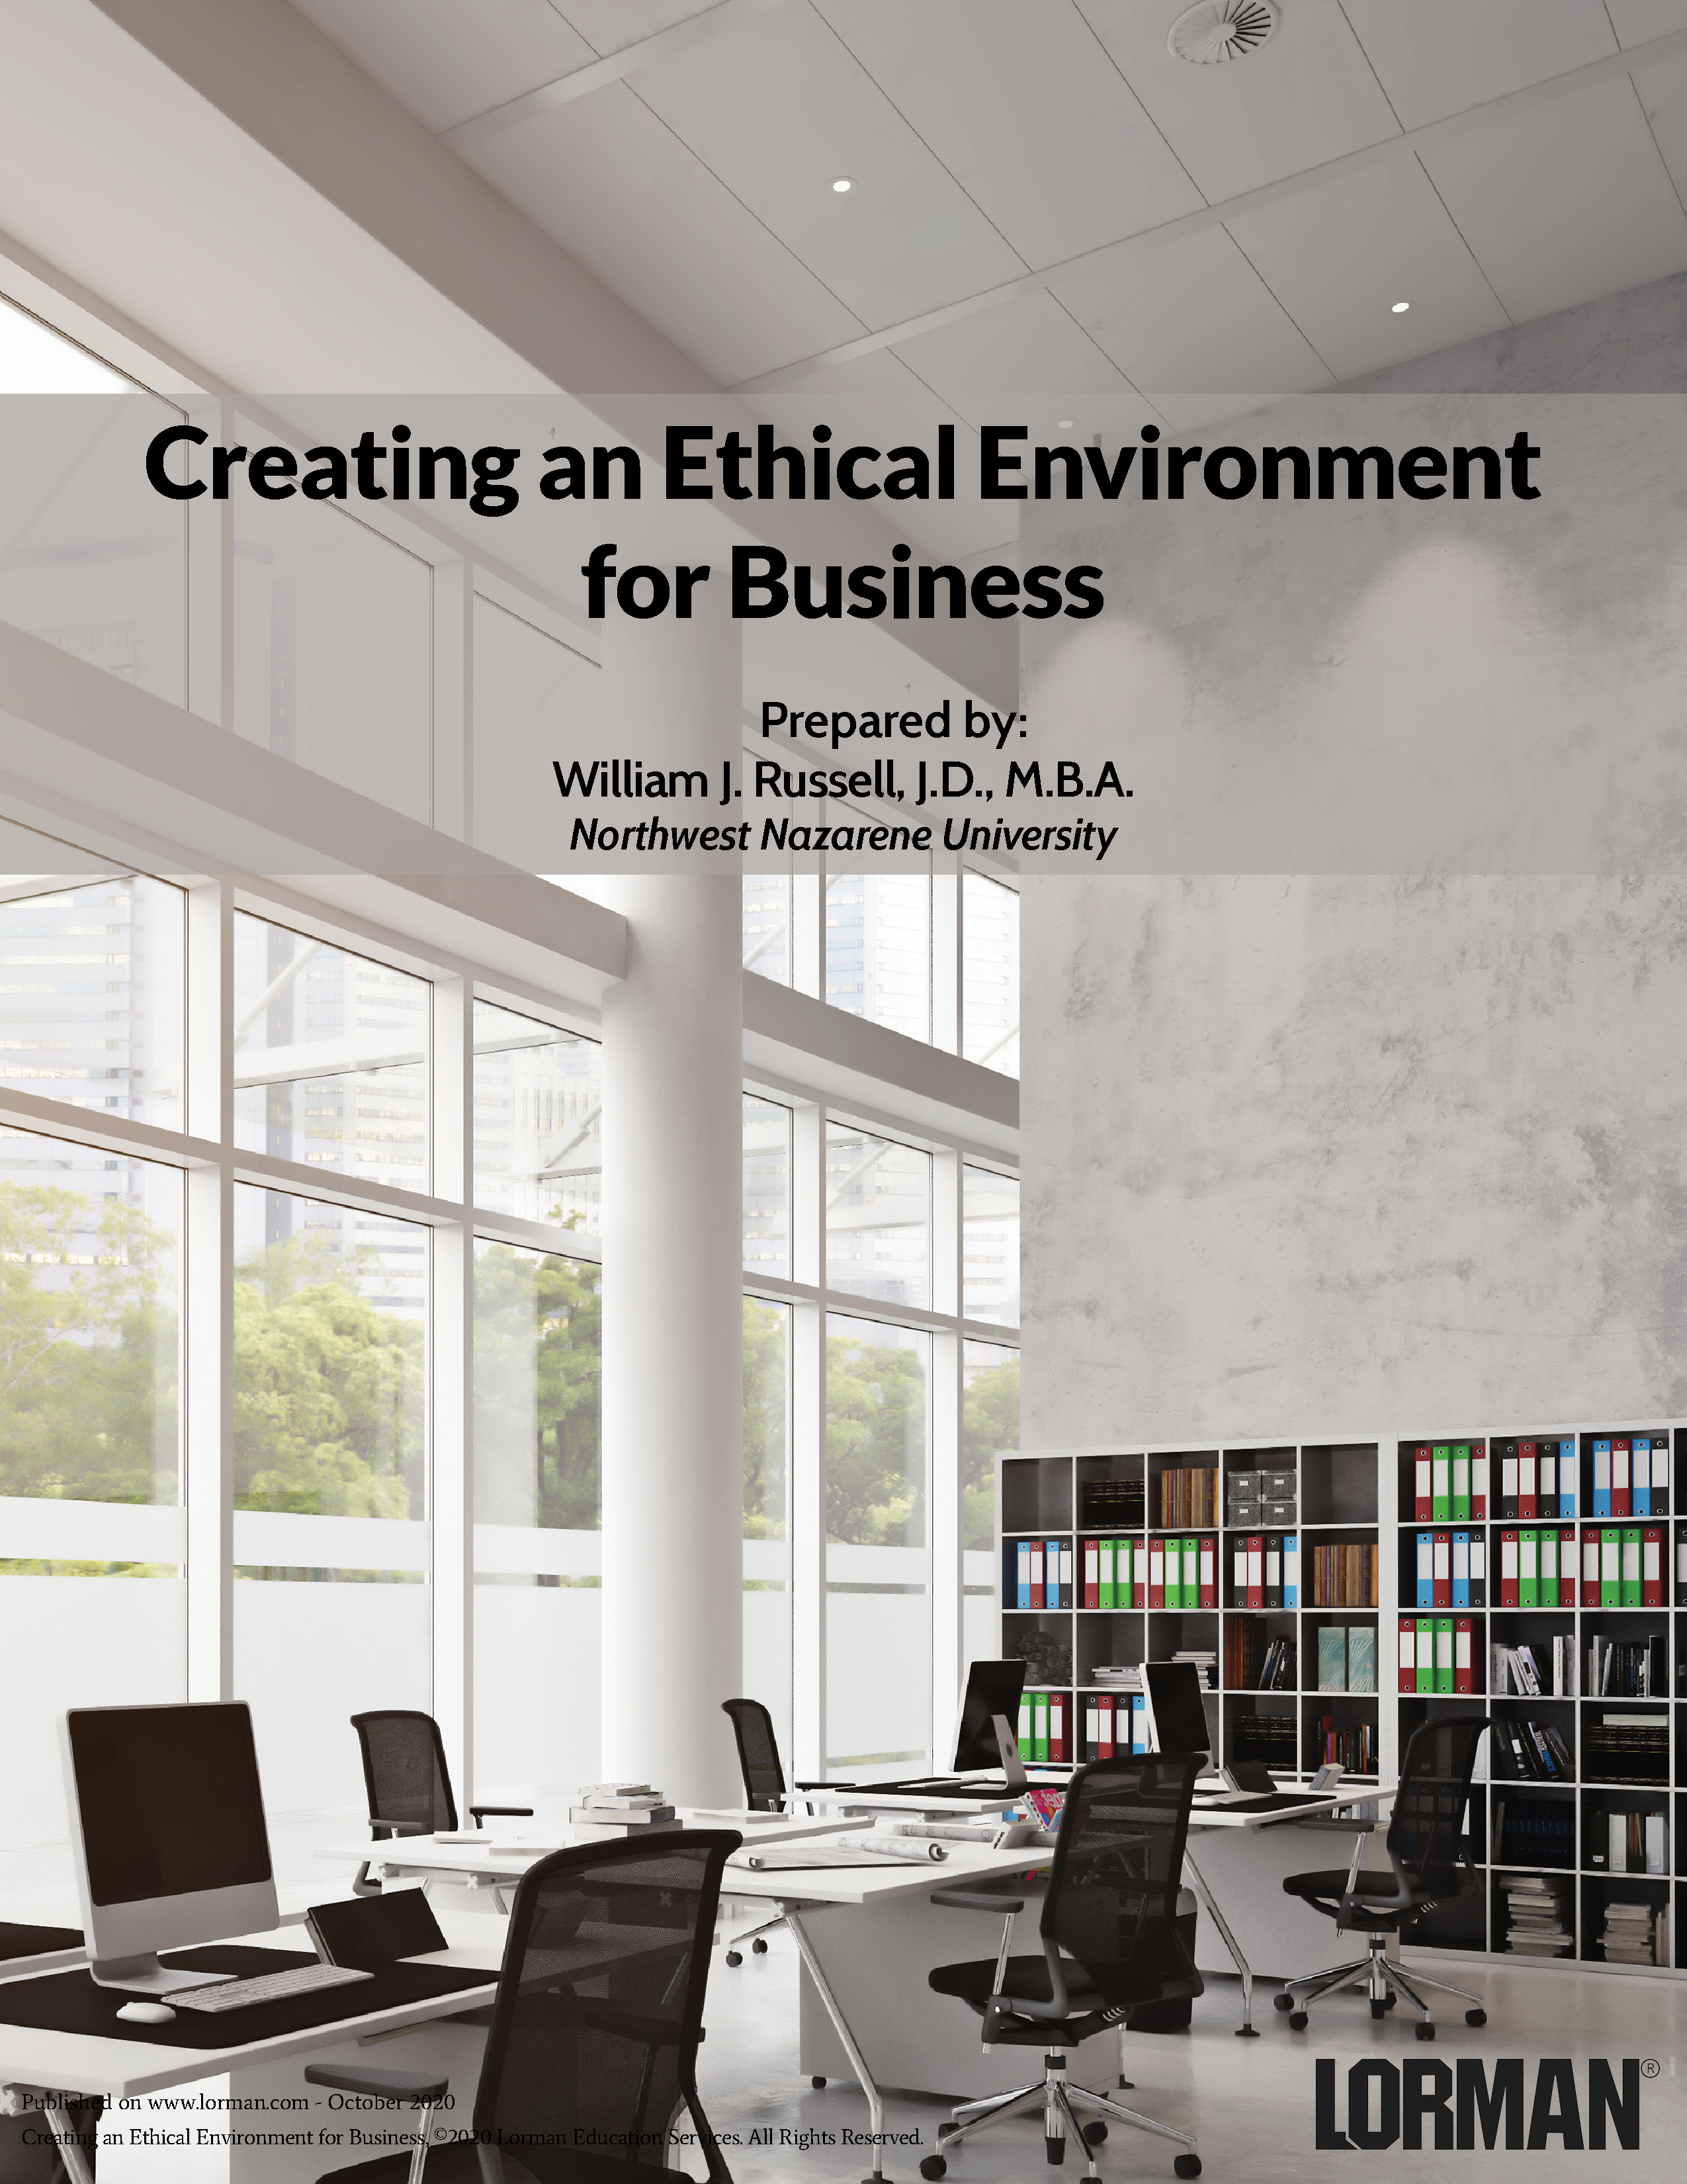 Creating an Ethical Environment for Business